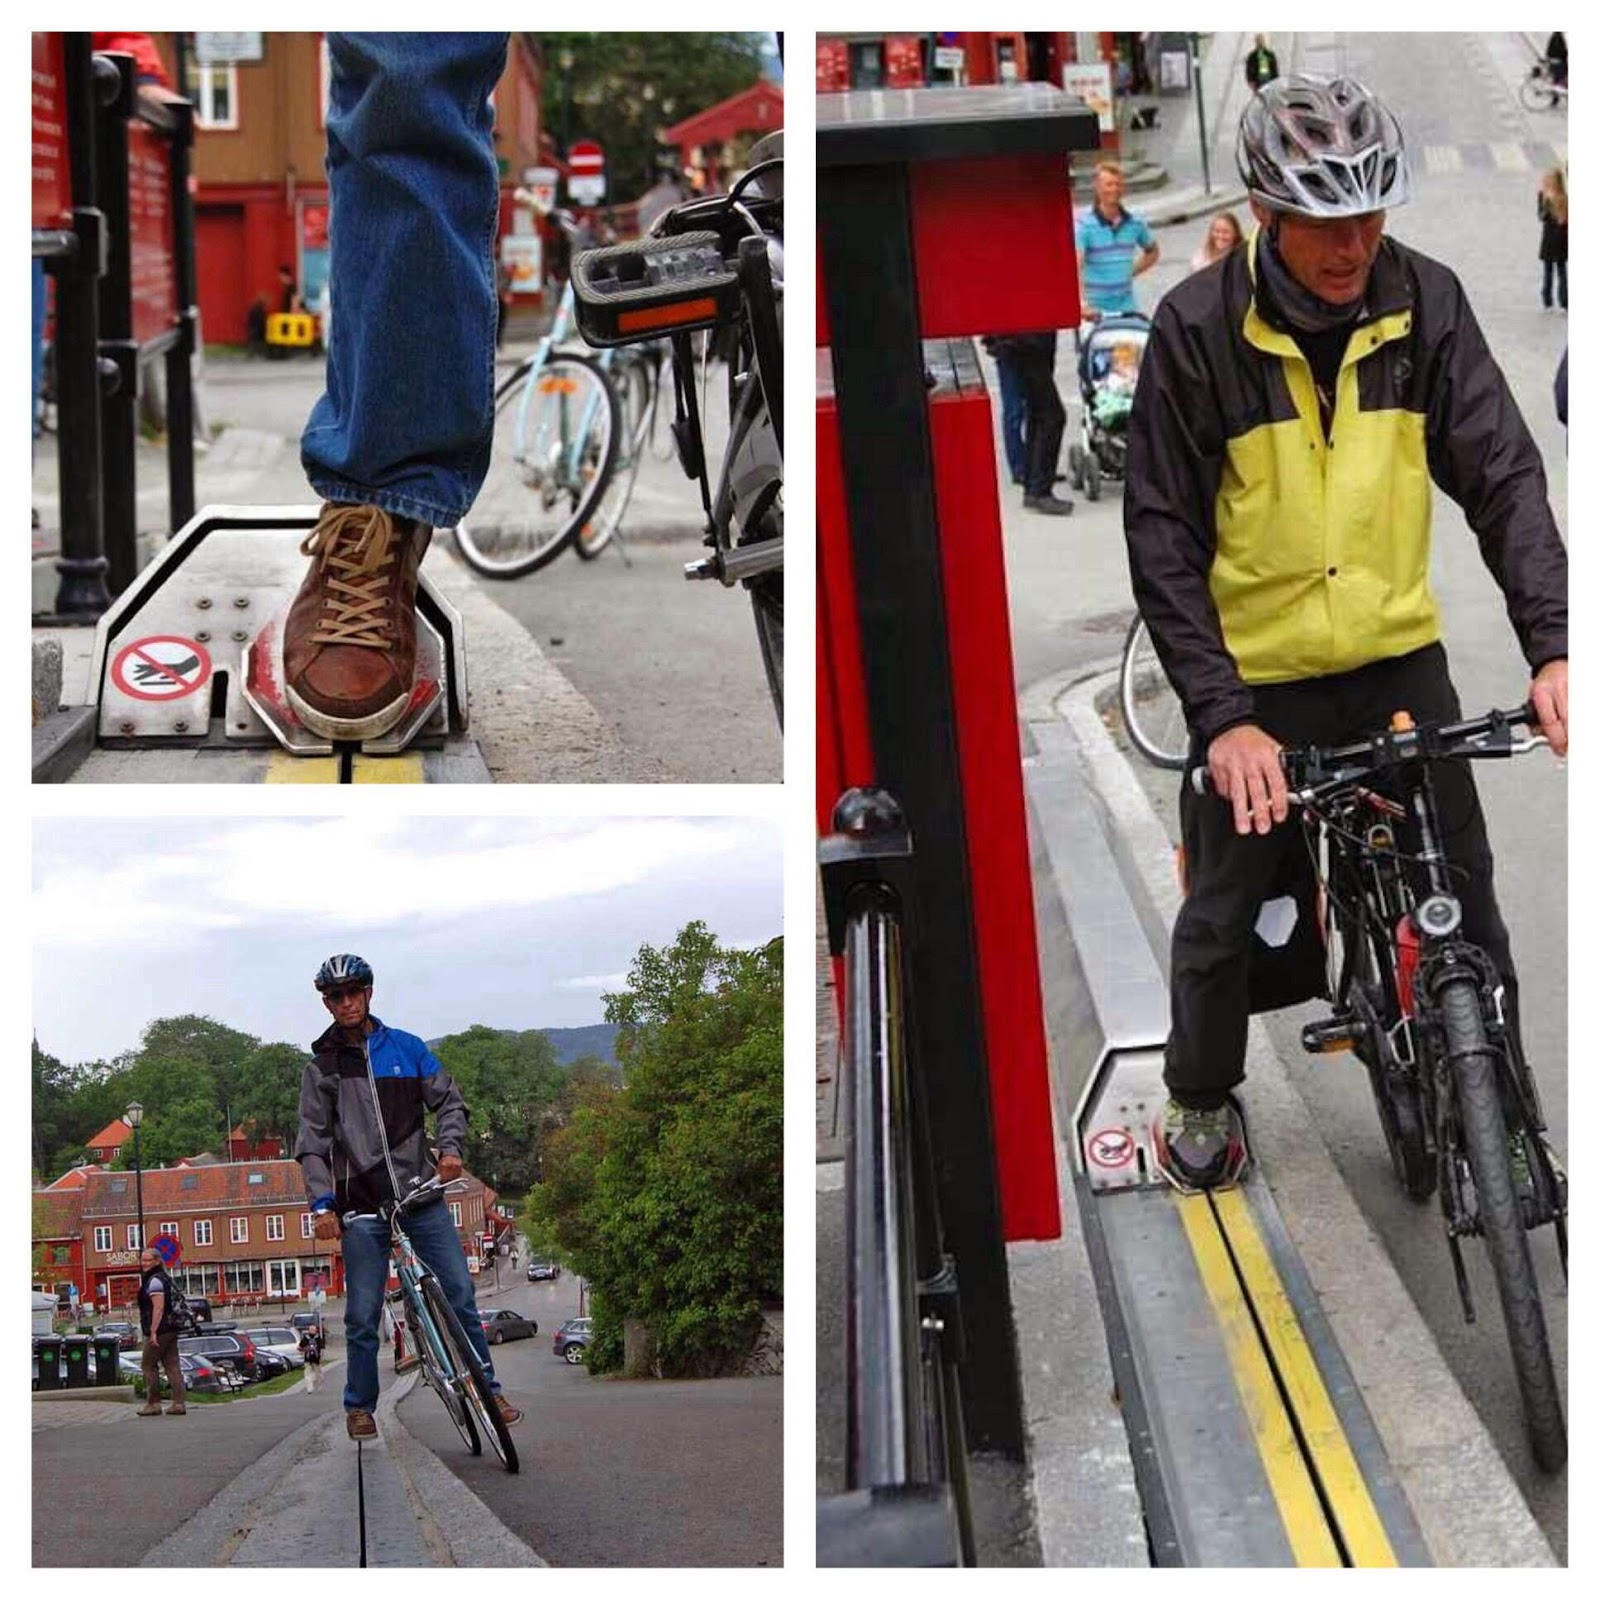 Norway has invented a bicycle escalator